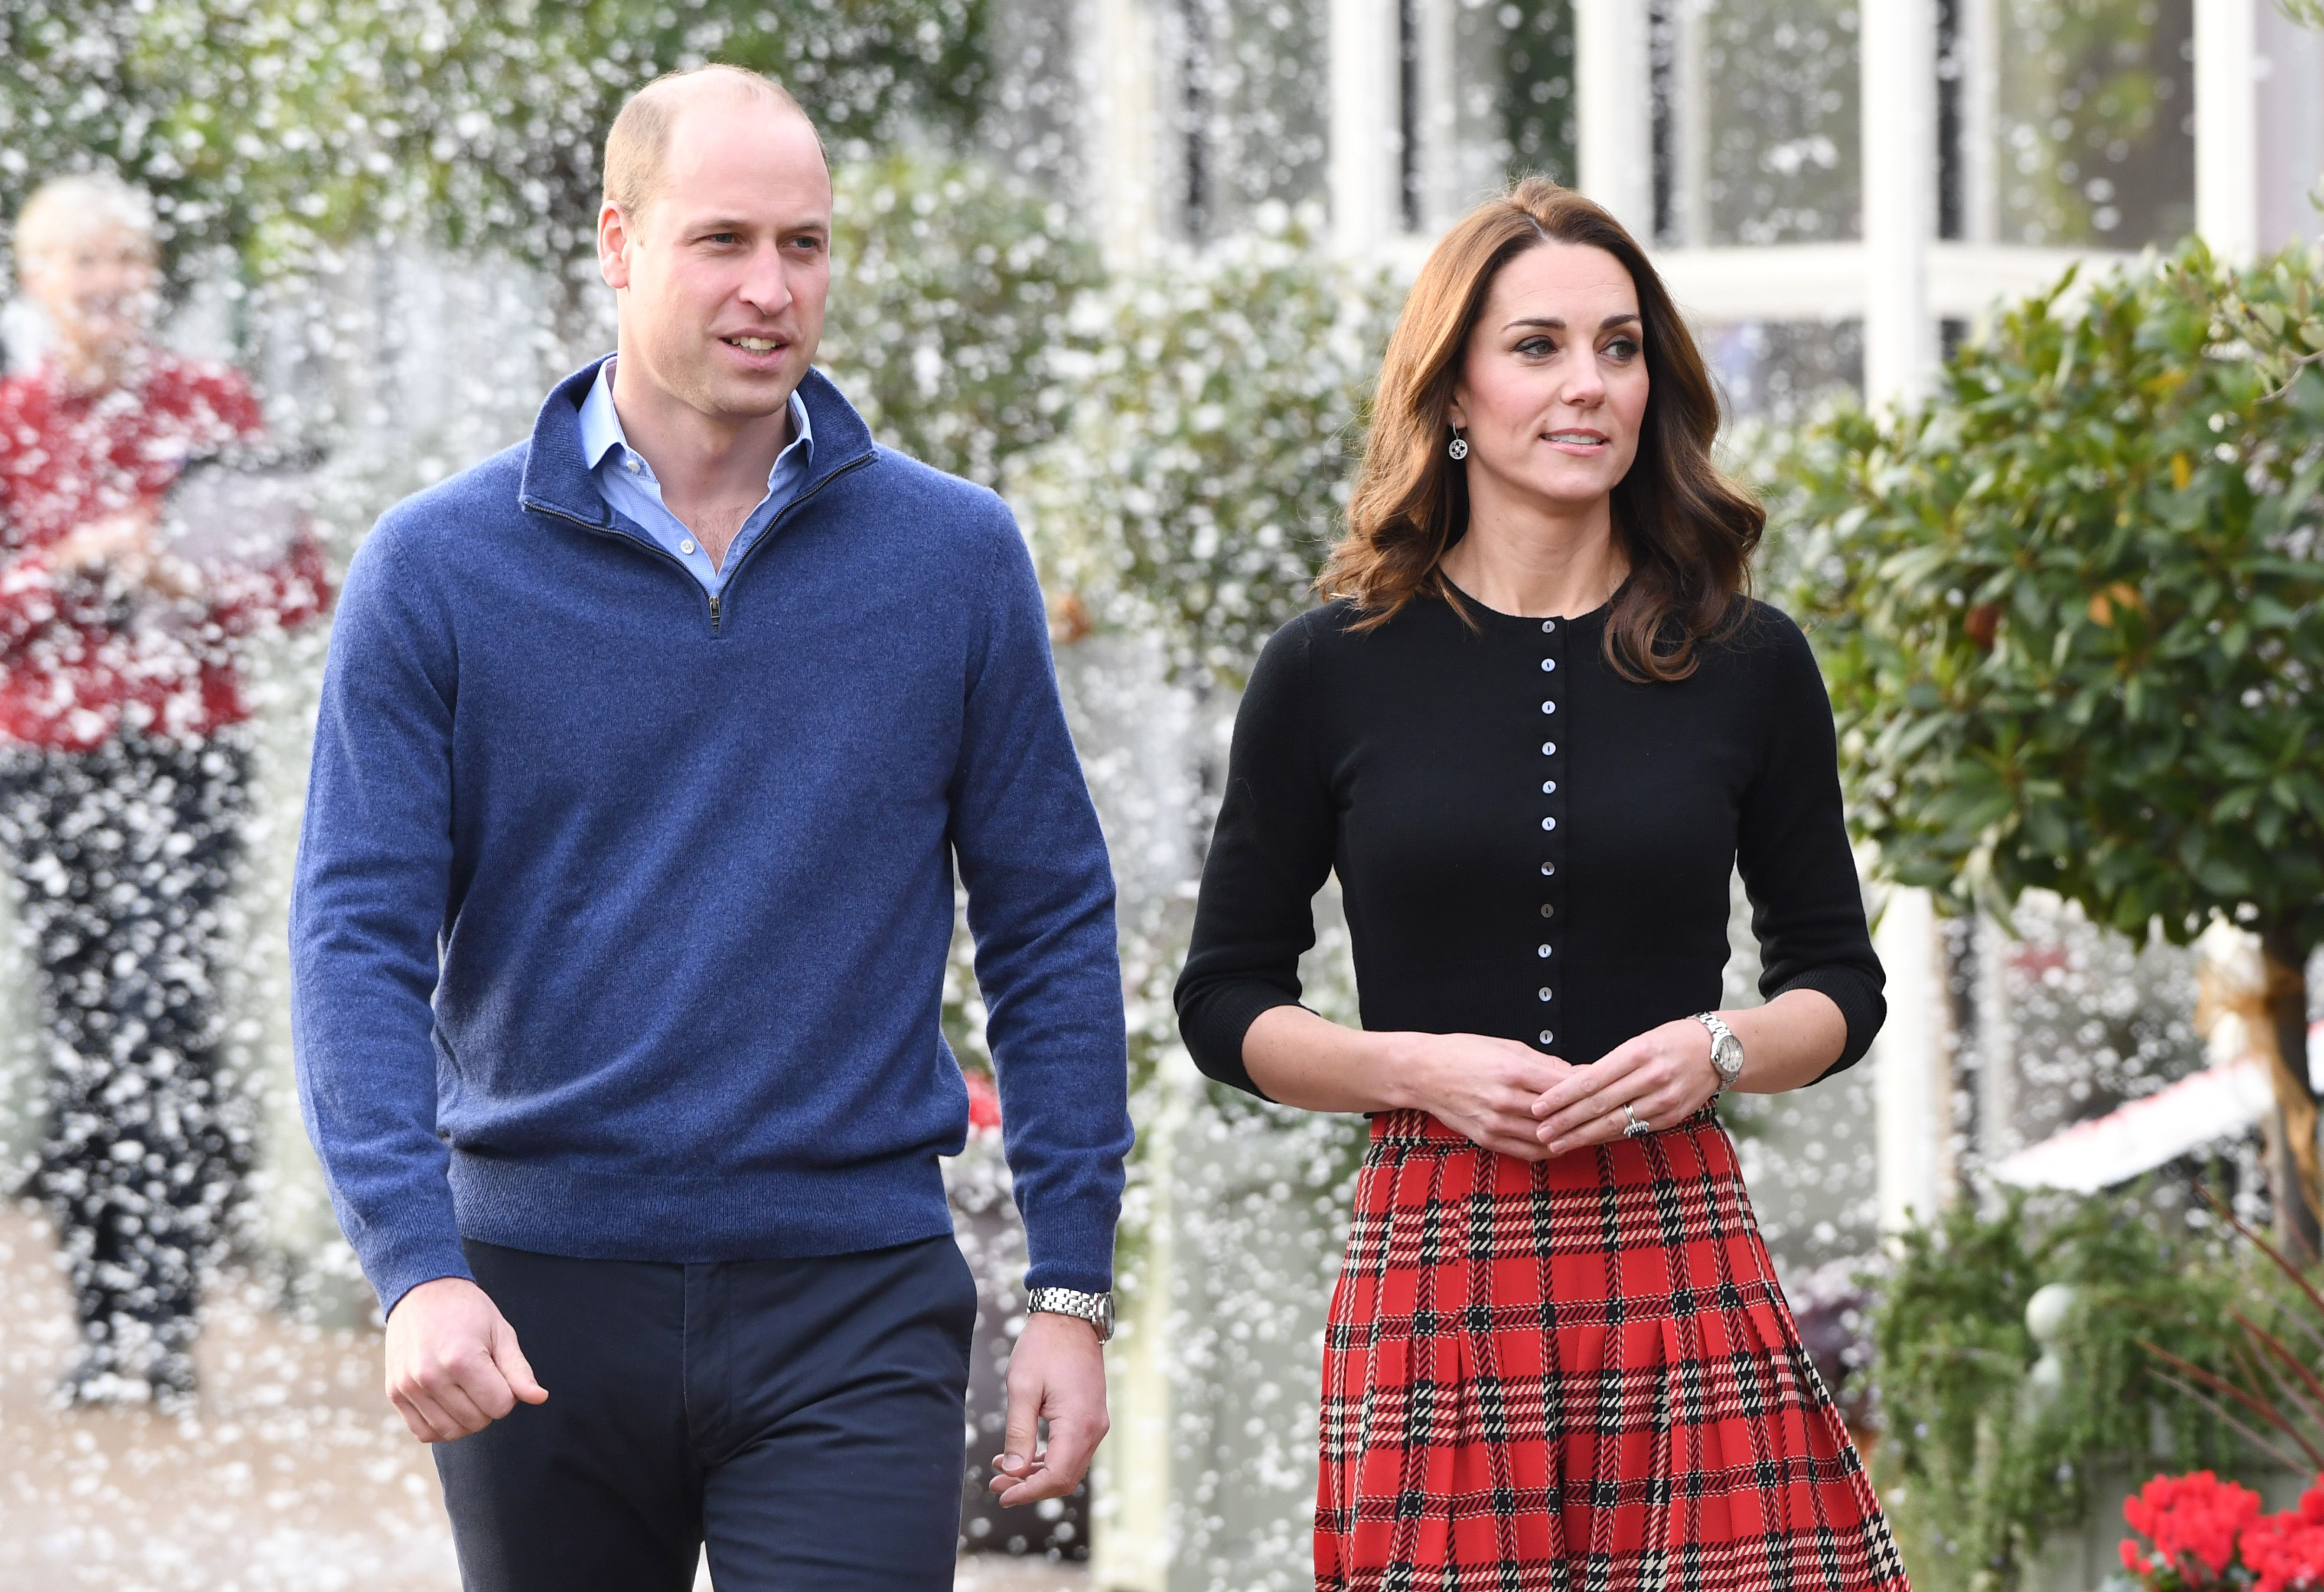 3b382af63 Kate Middleton Wears Black Top and Red Plaid Skirt for Her and Prince  William's RAF Family Christmas Party